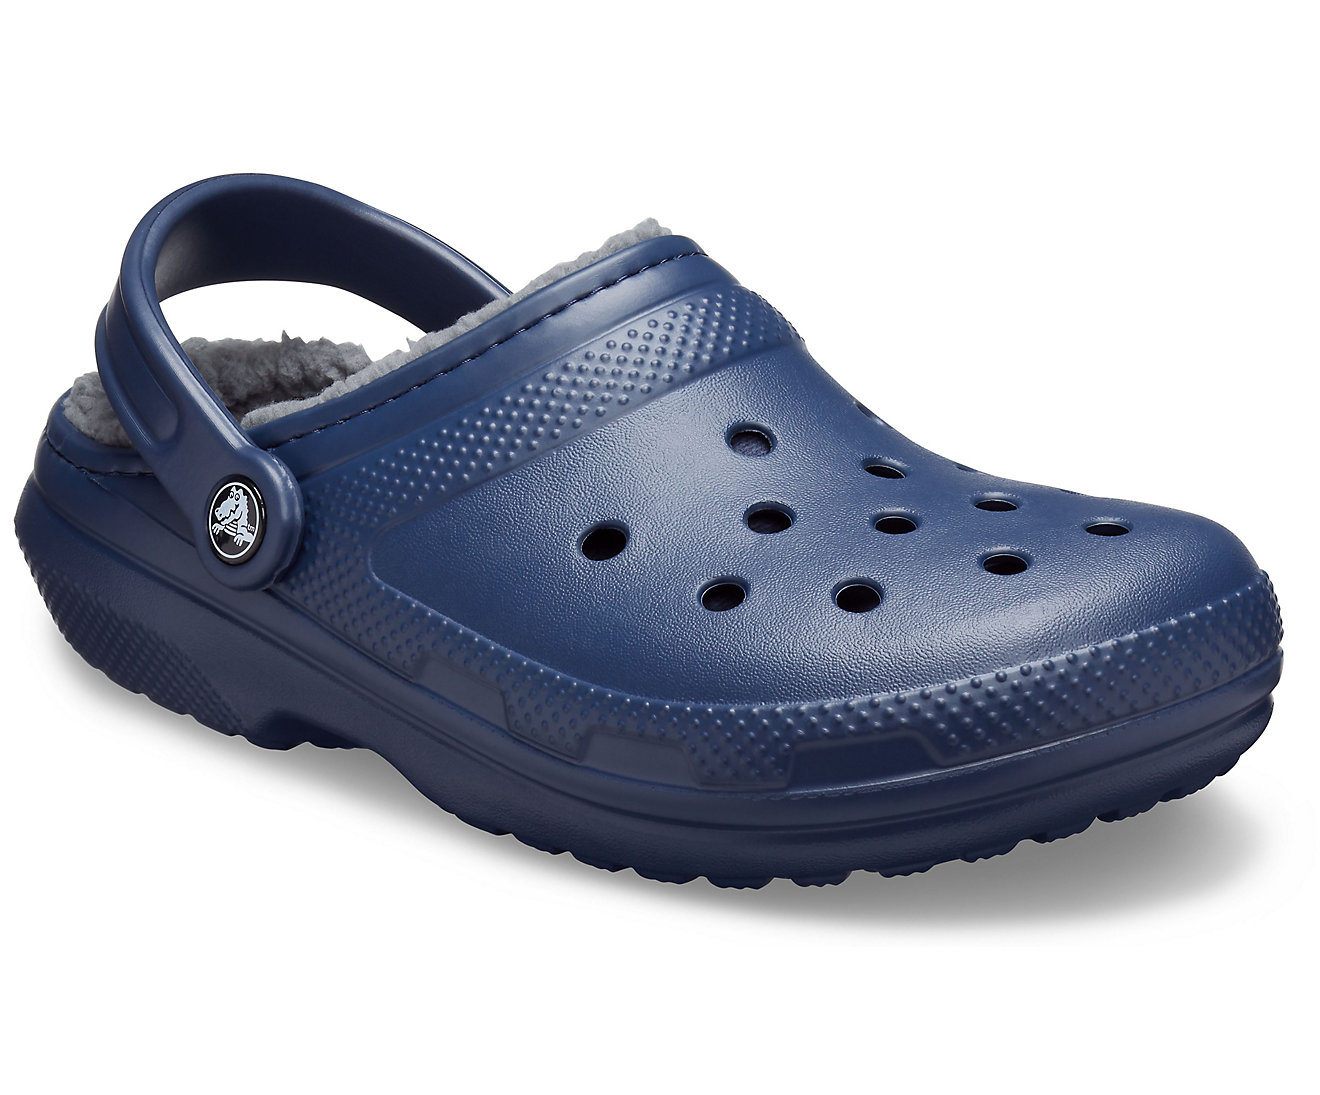 Crocs Lined Clog 203591-459 NAVY/CHARCOAL Μπλε σκούρο